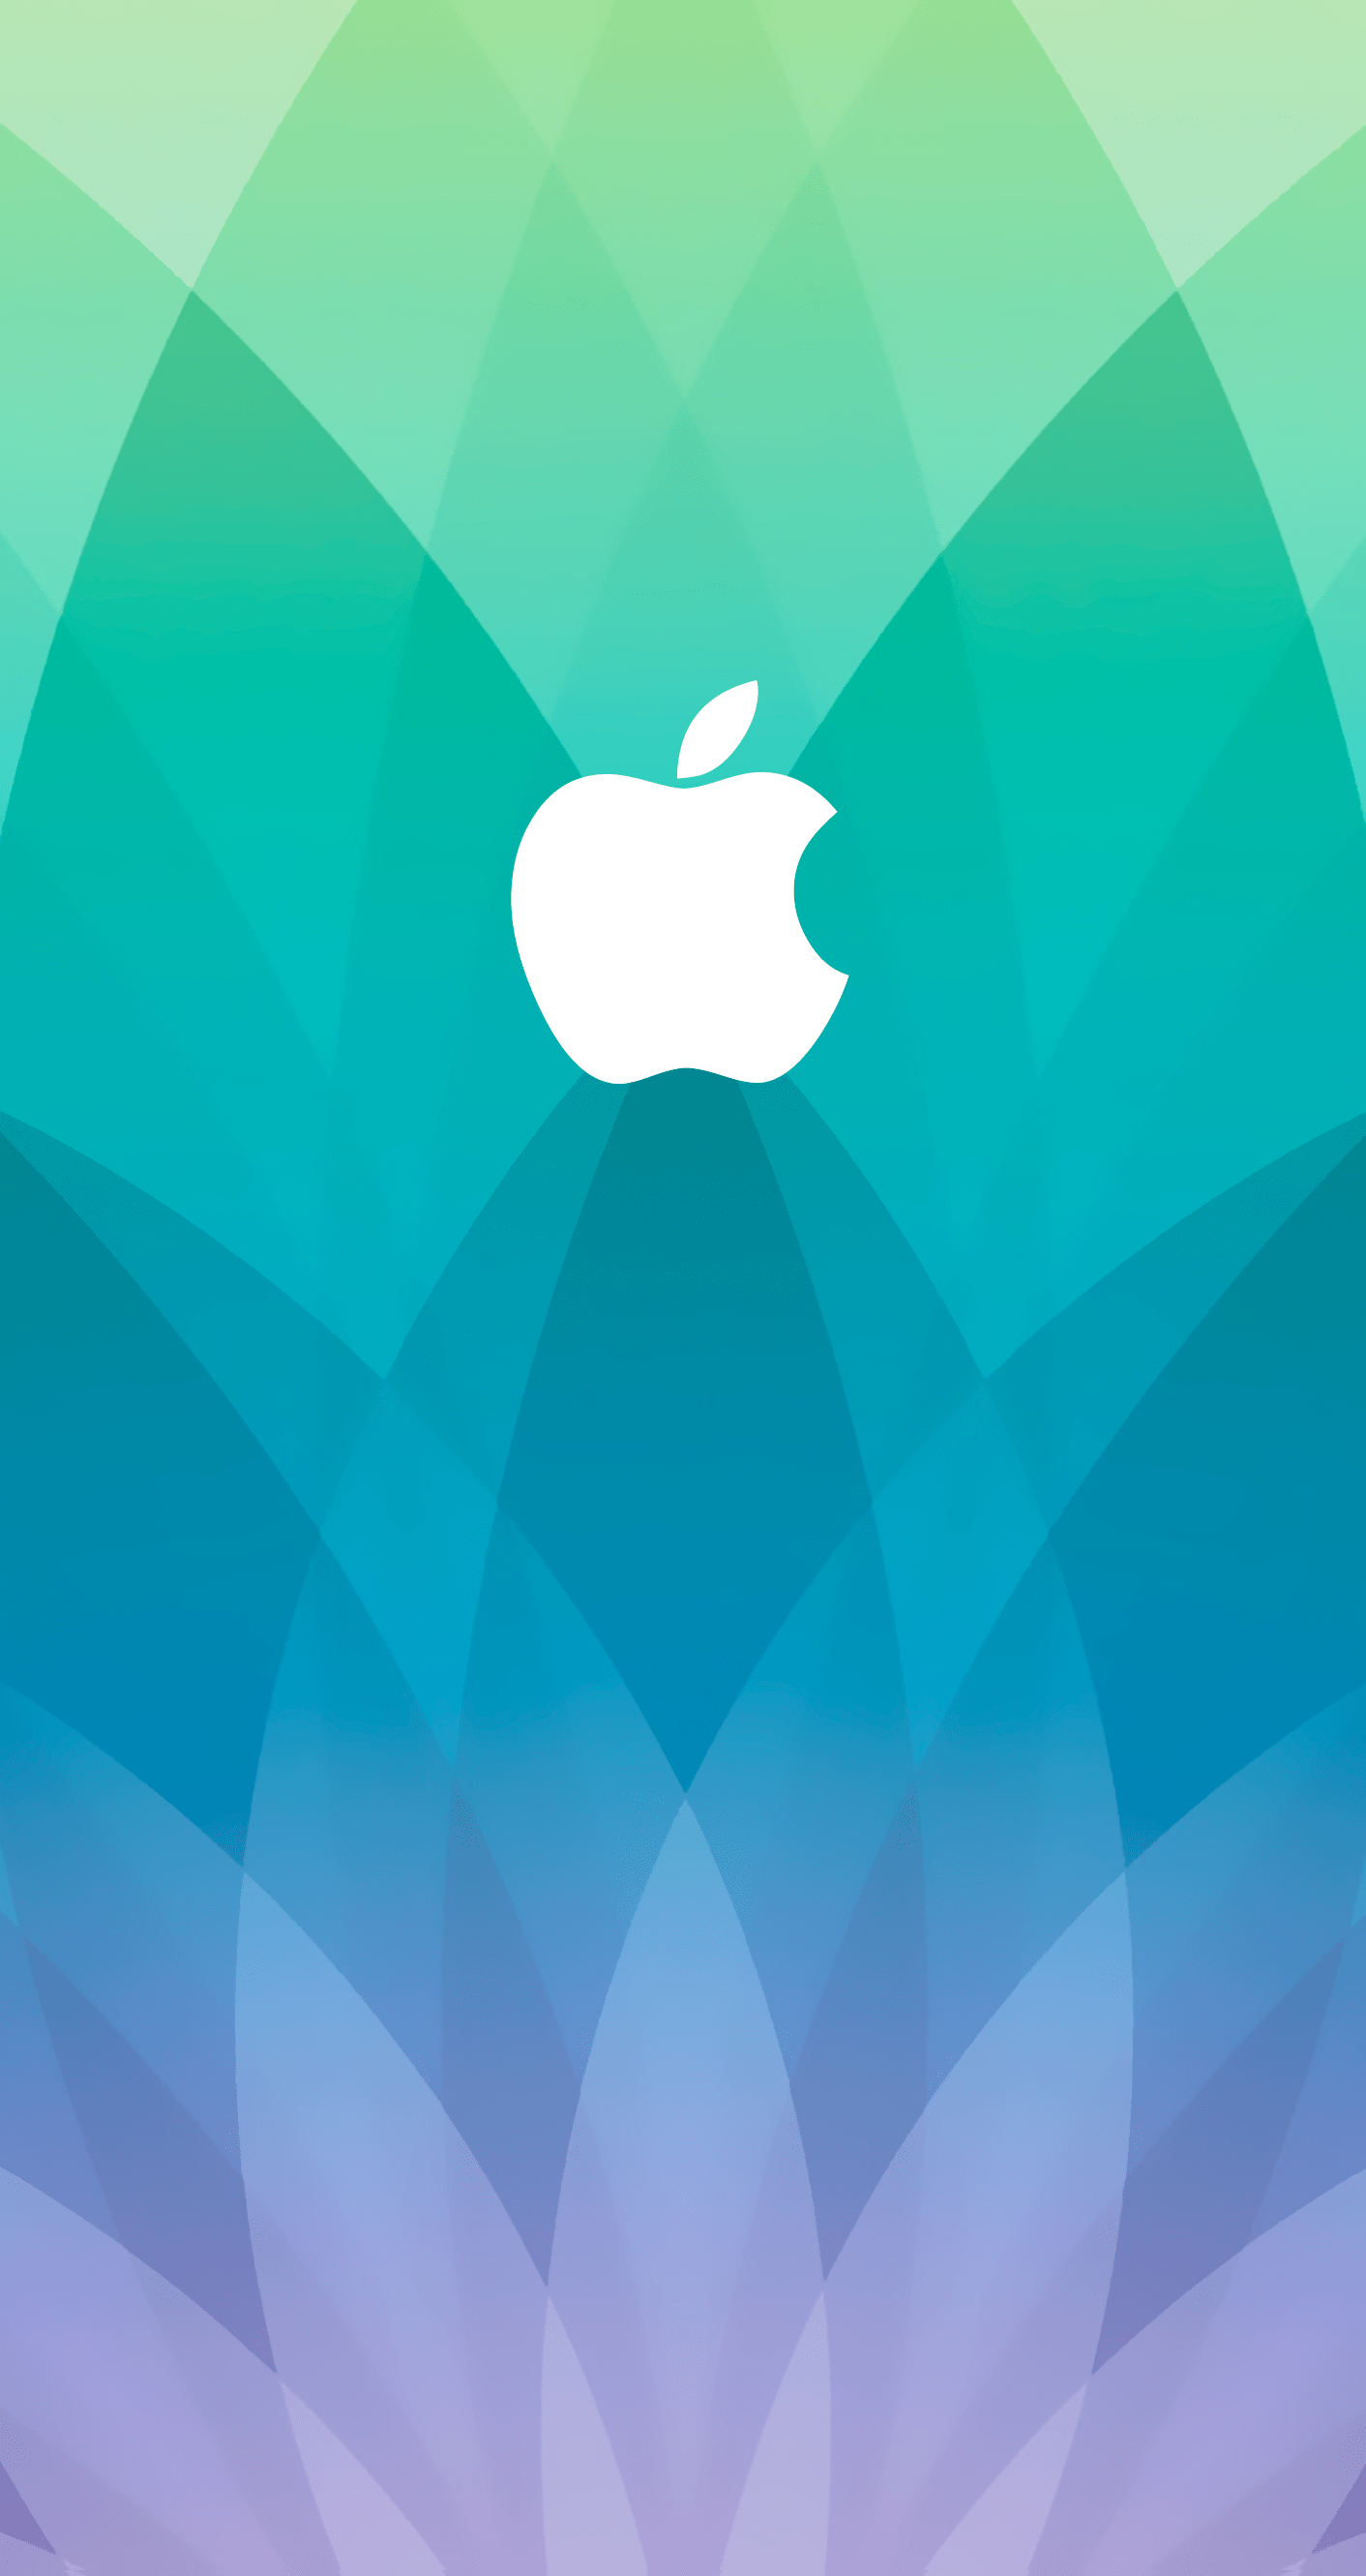 Wallpaper Apple Iphone 6 Wallpapers Para Iphone Del Evento Spring Forward Del 9 03 15